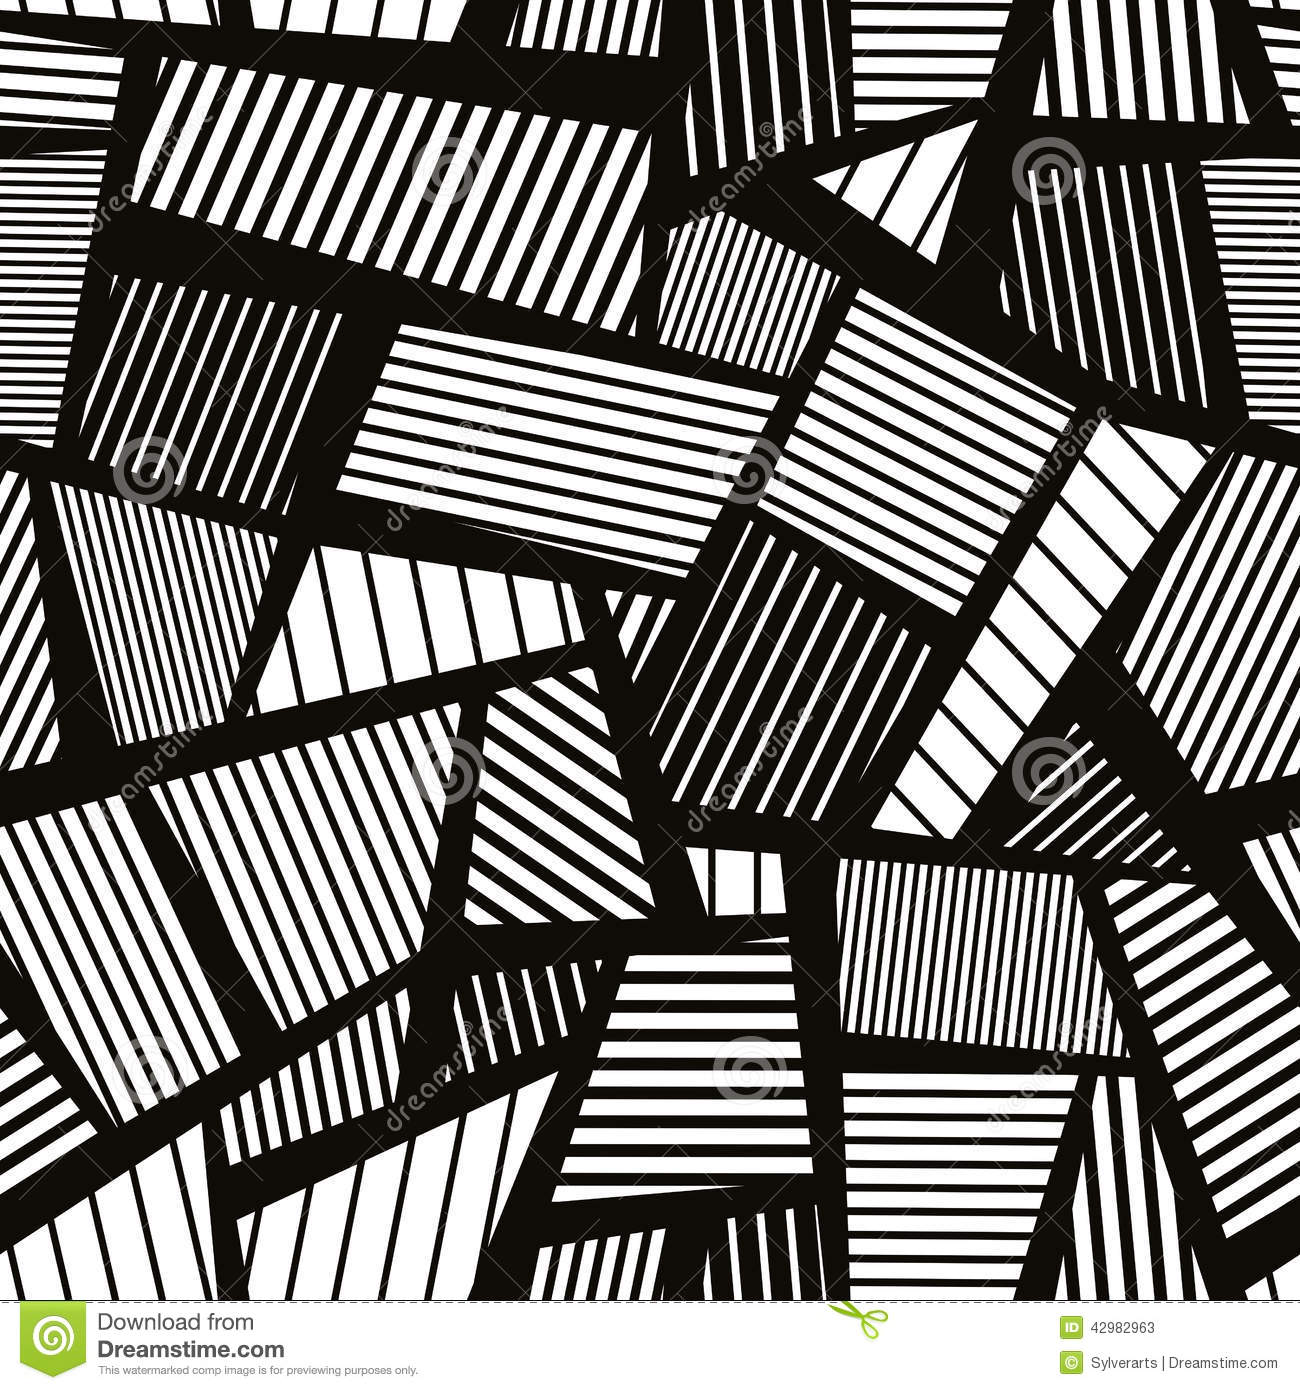 Line Texture Vector : Abstract line textures seamless pattern stock vector